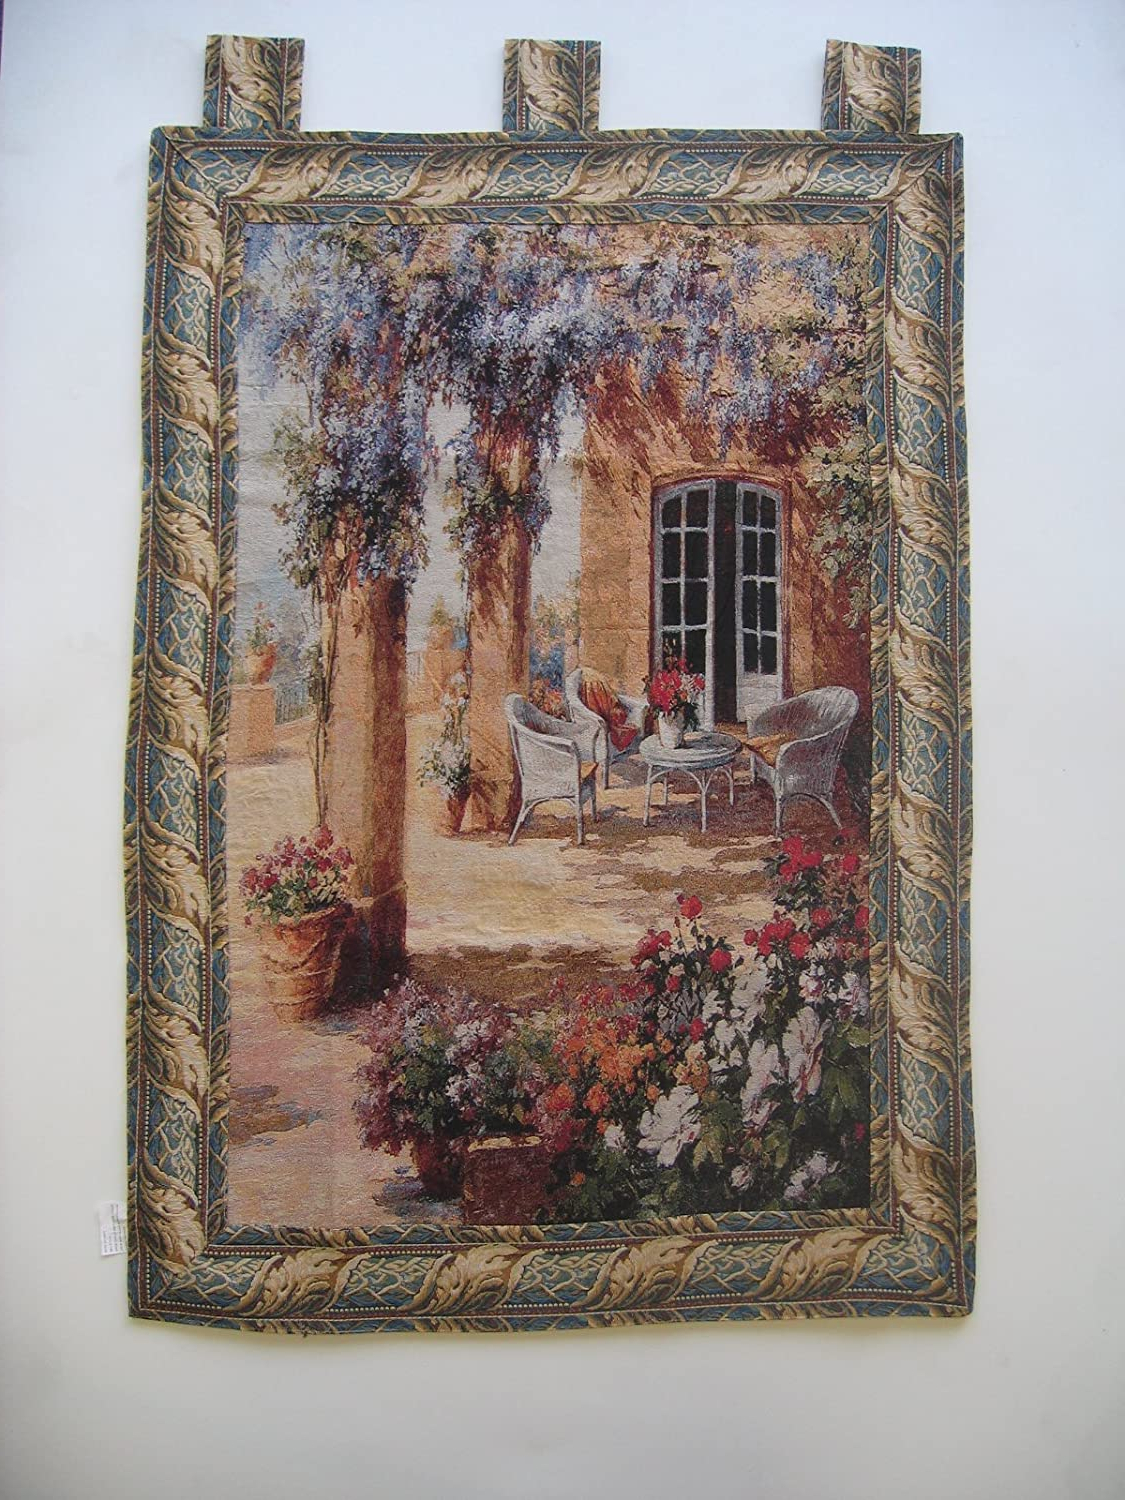 Dada Bedding Wh 11997 Quiet Evening – Amazon For Most Up To Date Blended Fabric Classic French Rococo Woven Tapestries (View 11 of 20)